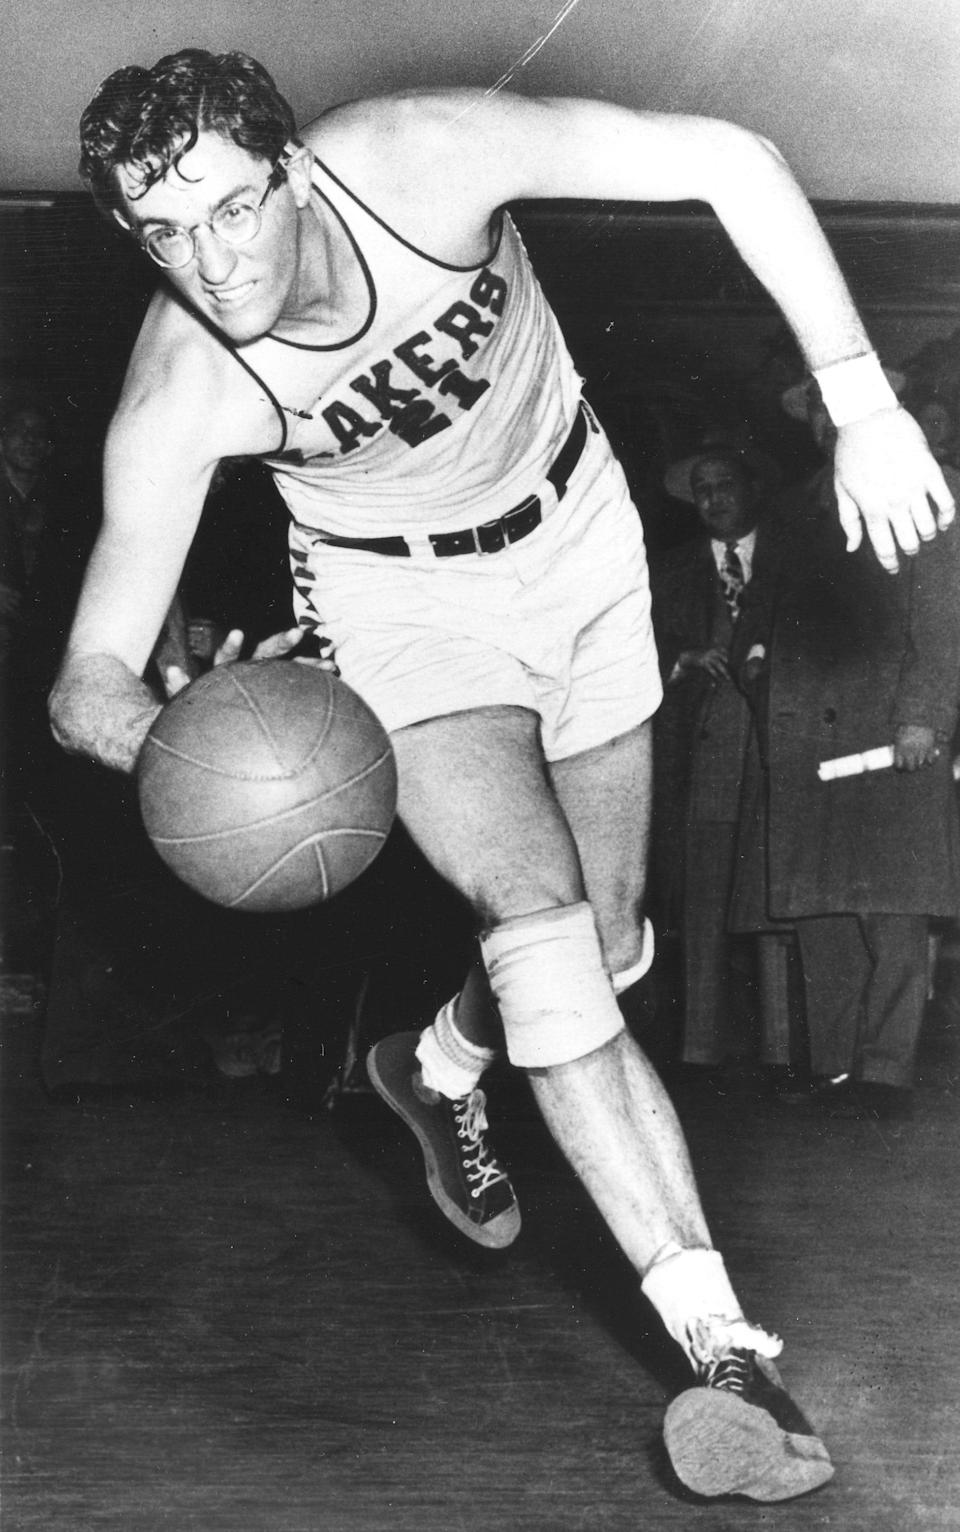 George Mikan, former DePaul University basketball star now with the Minneapolis Lakers of the National Basketball Association in an undated photo.